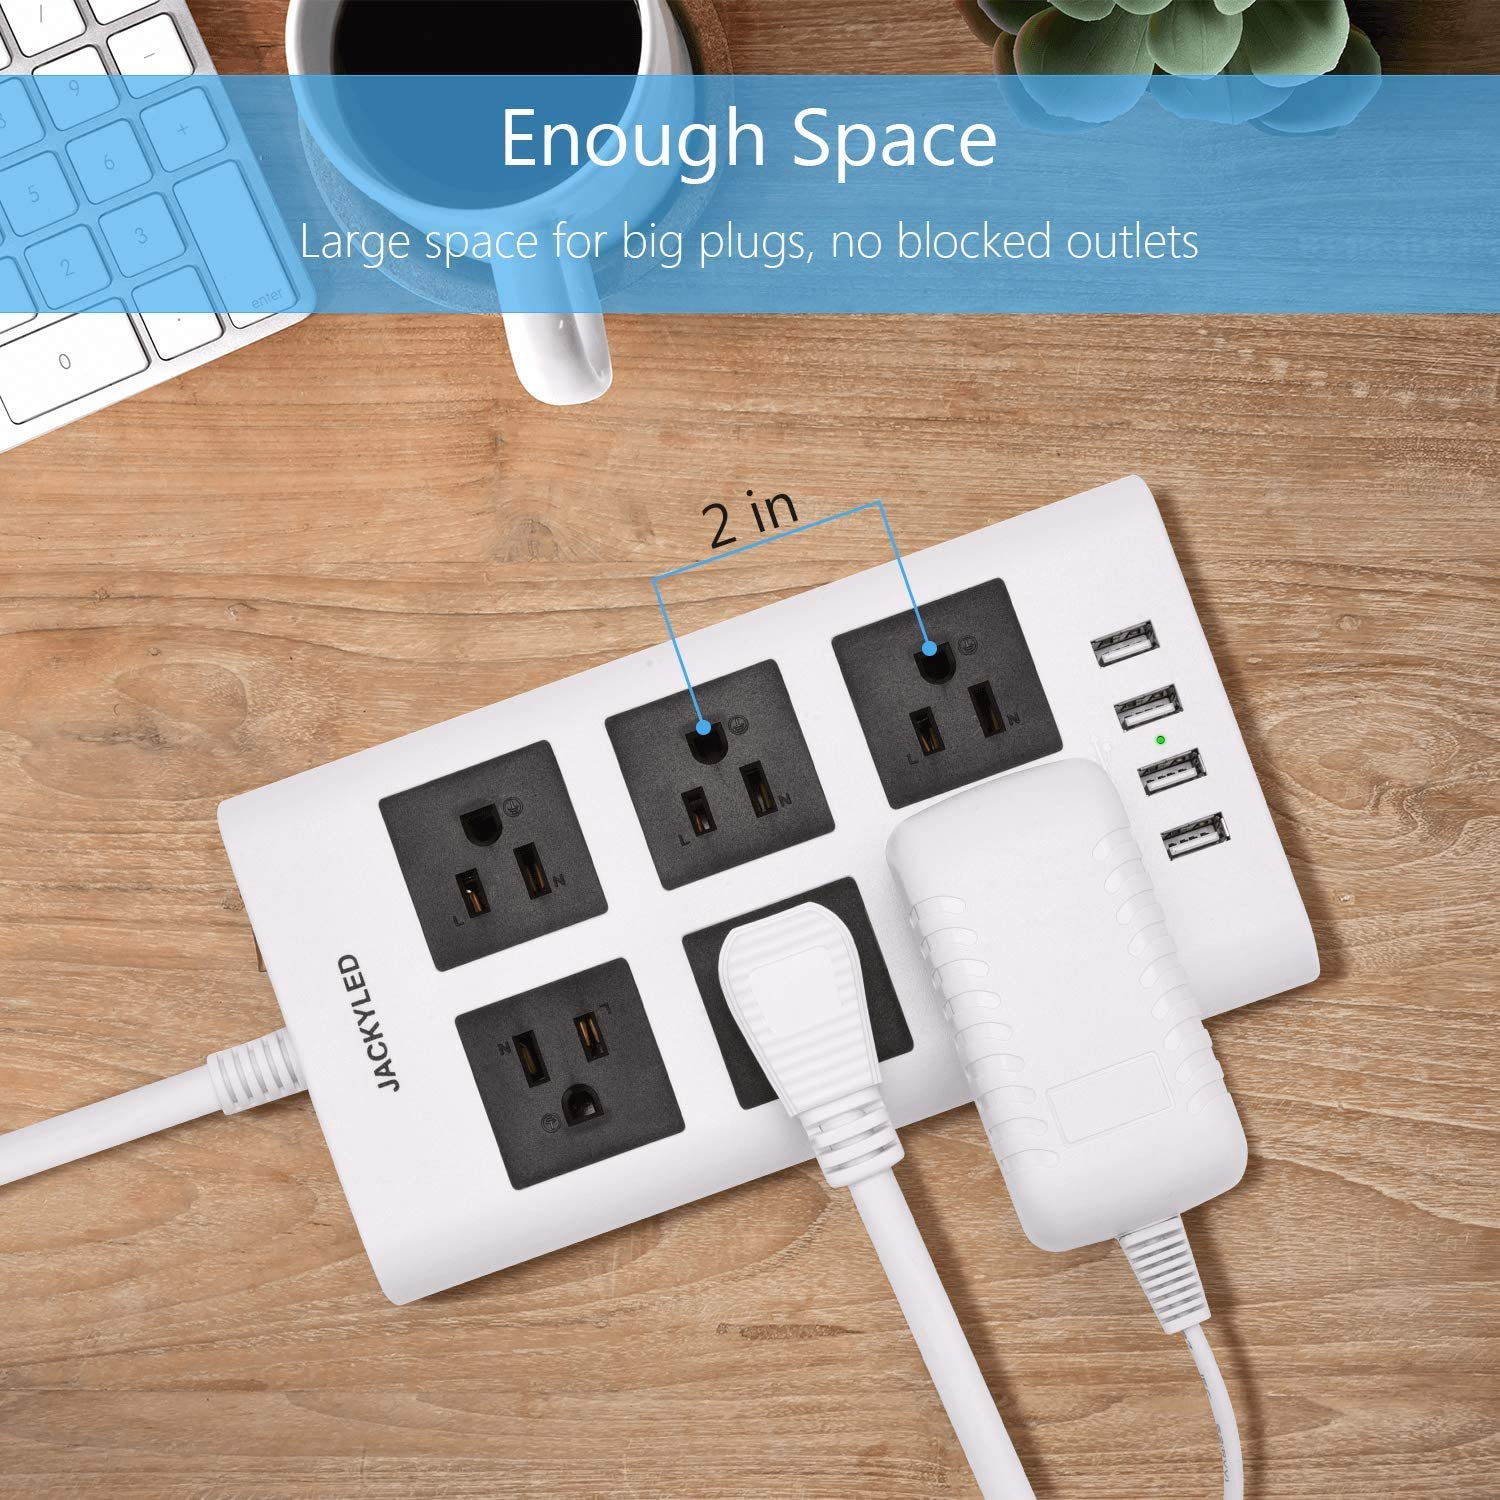 Dorm Hotel 9.8ft Surge Protector Power Strip with USB JACKYLED 1875W//15A 6 AC Wide Spaced Outlets 2.4A 4 USB Fast Charing Ports Flat Plug 14AWG Heavy Duty Extension Cord for Home Blue Black Office